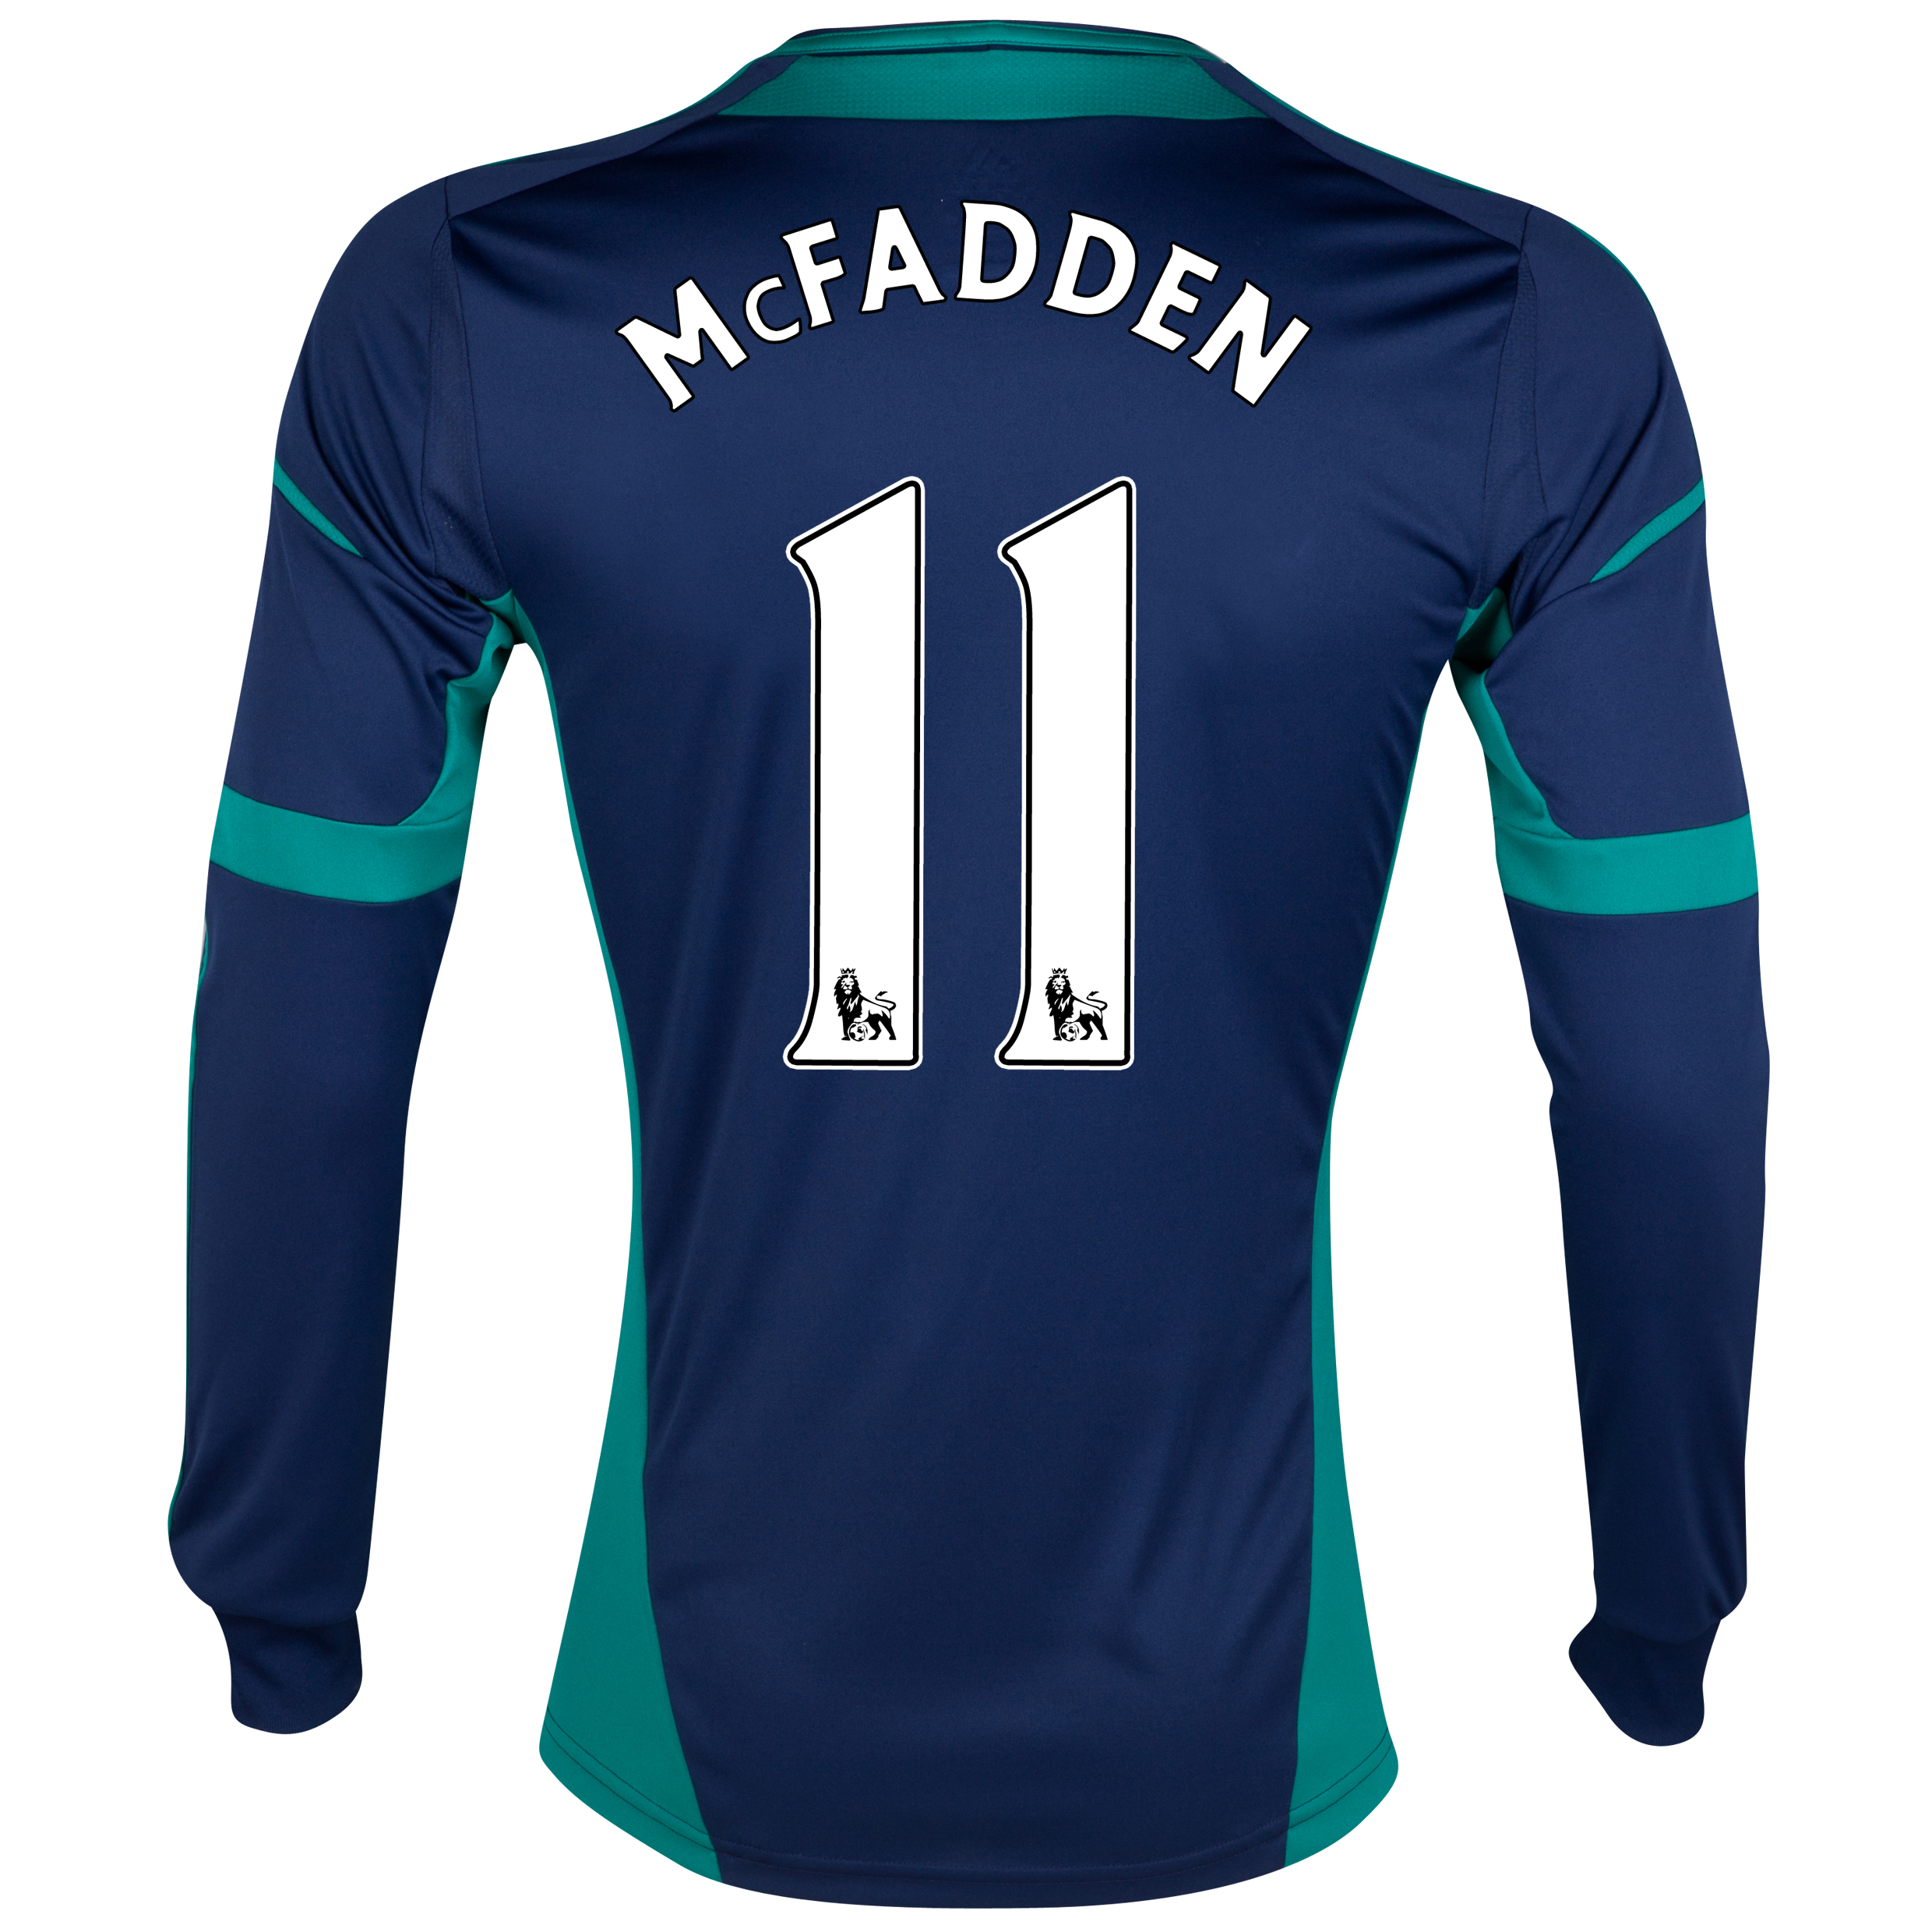 Sunderland Away Shirt 2012/13 - Long Sleeved with McFadden 11 printing